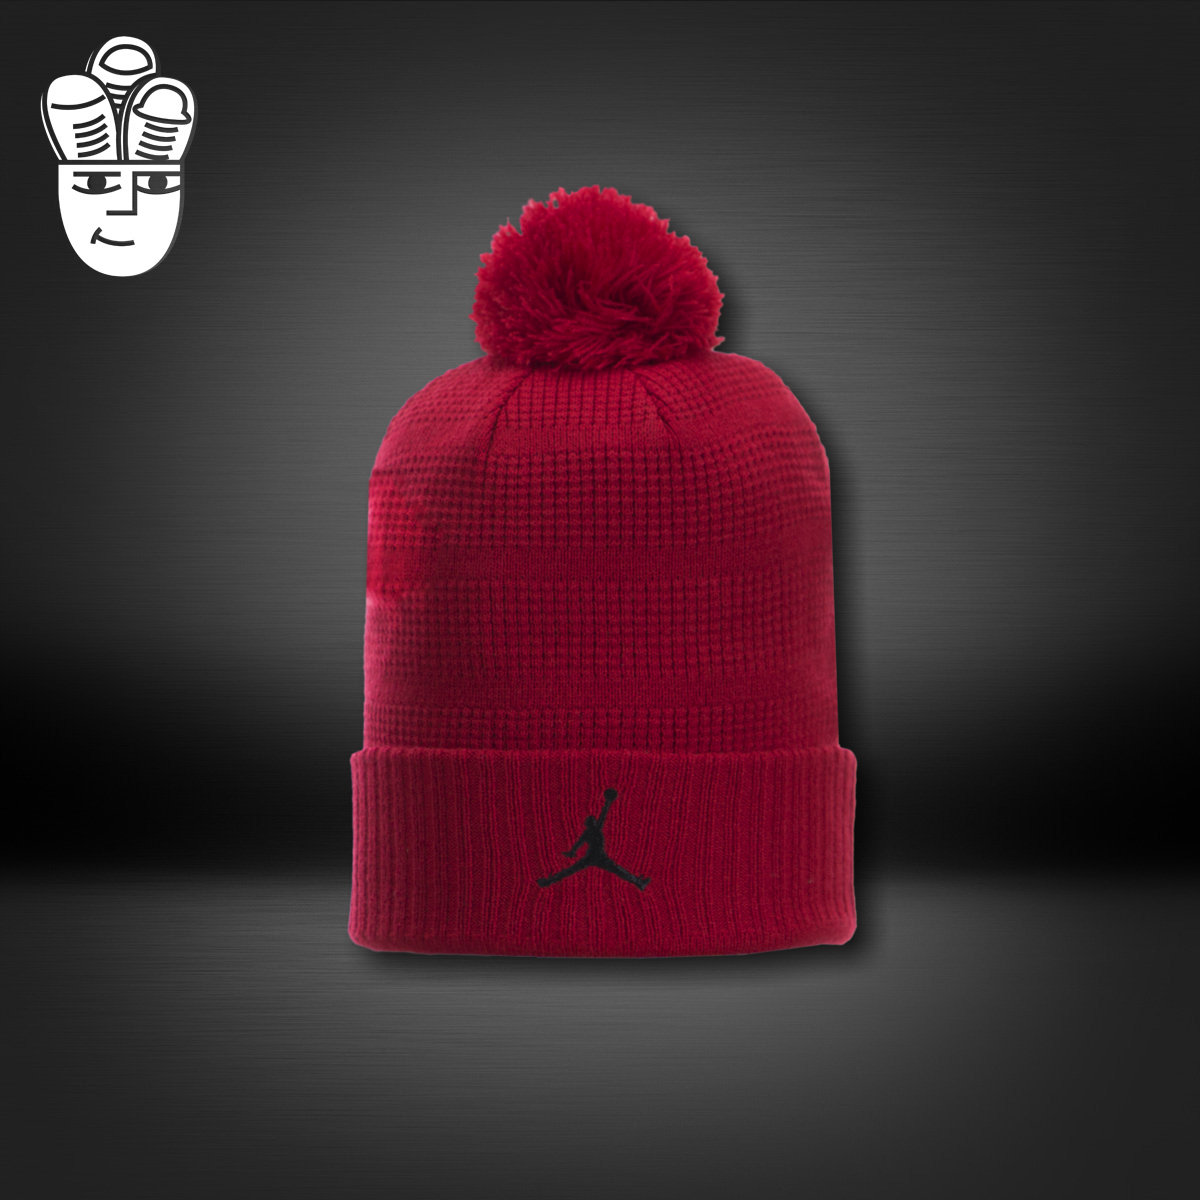 36dcf38c5 Buy Pom beanie air jordan aj trapeze logo fashion knitted hat warm ...